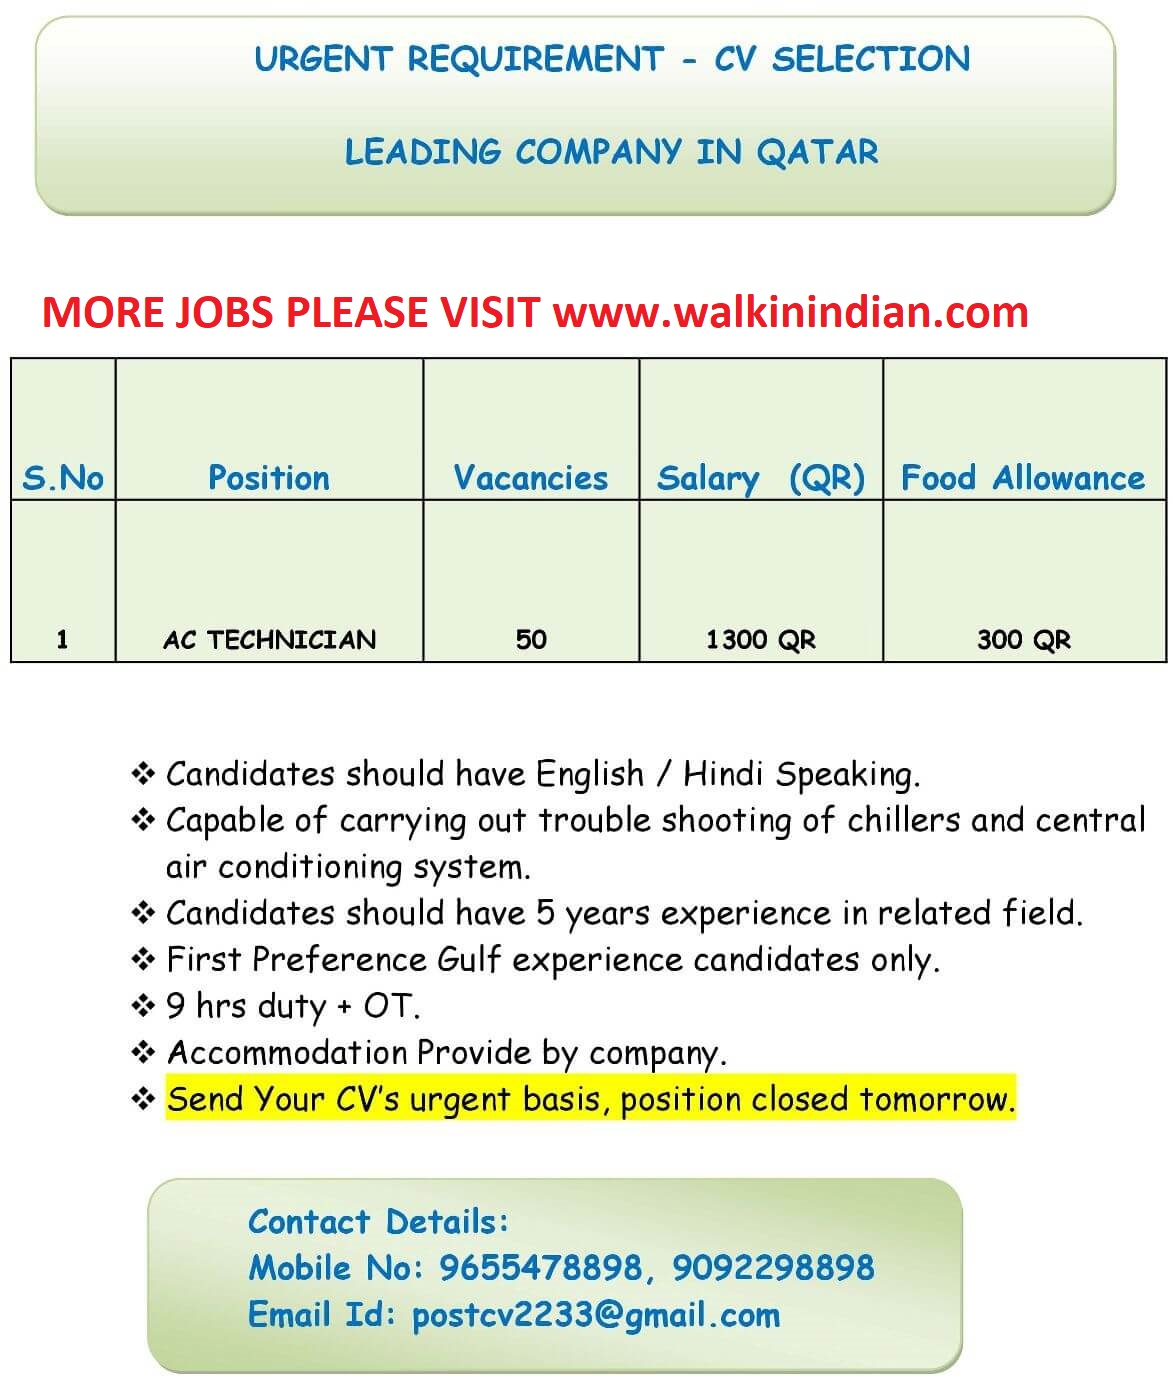 AC TECHNICIAN URGENT REQUIREMENT - CV SELECTION LEADING COMPANY IN QATAR